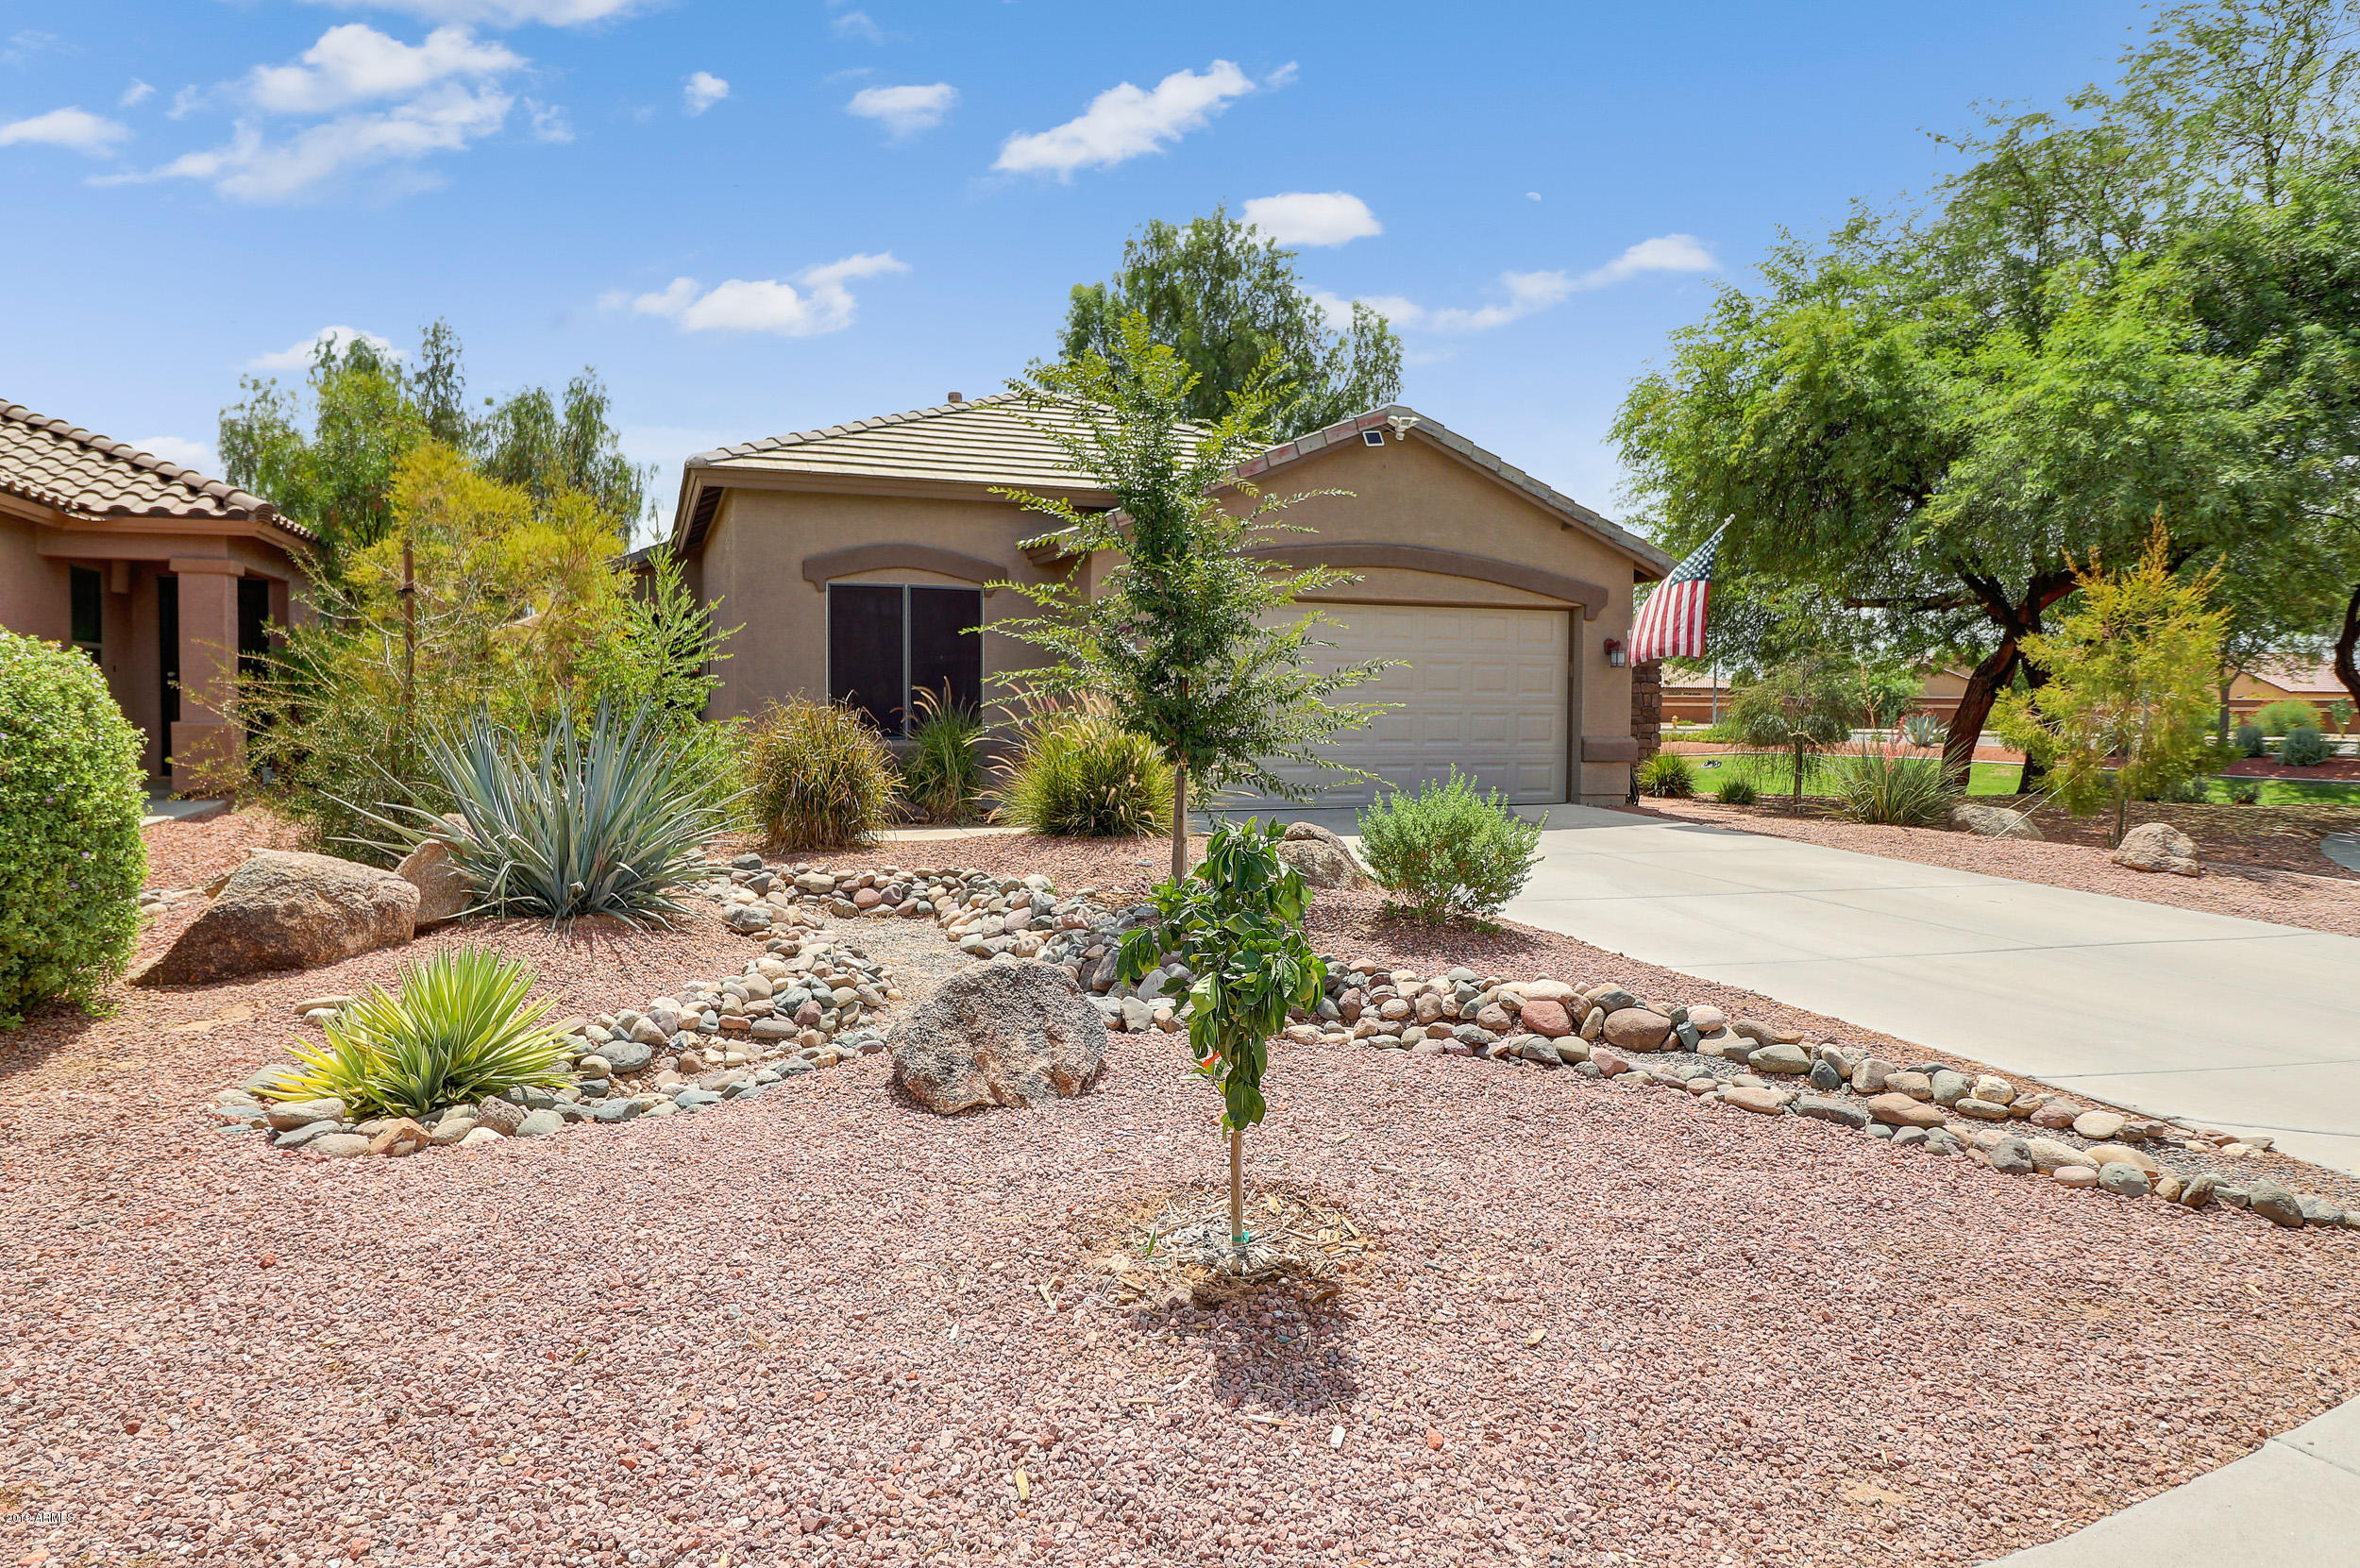 15513 N 156TH Drive, Surprise, Arizona